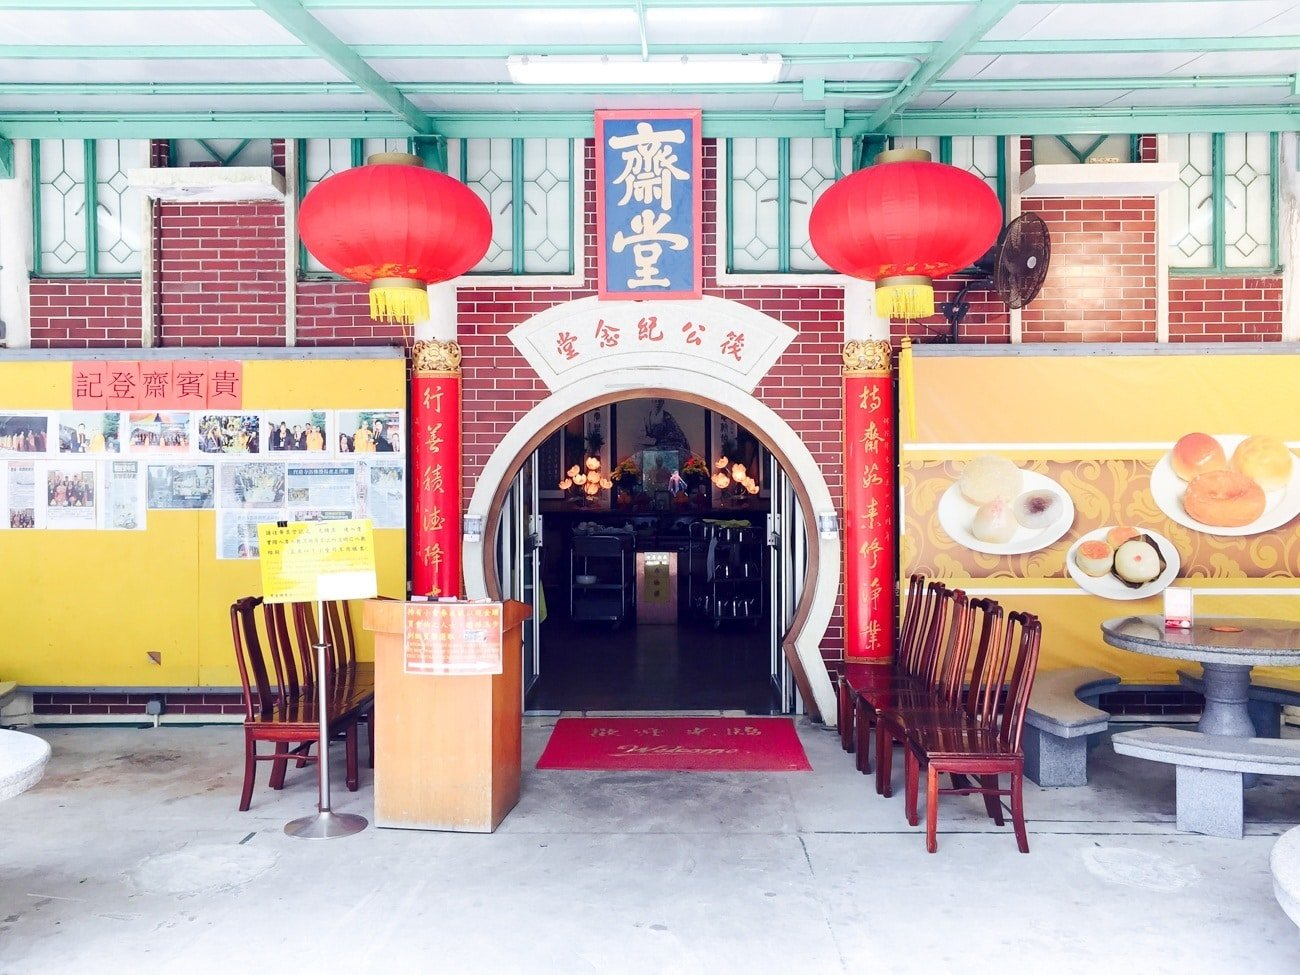 The entrance to the VIP room at the Po Lin Monastery